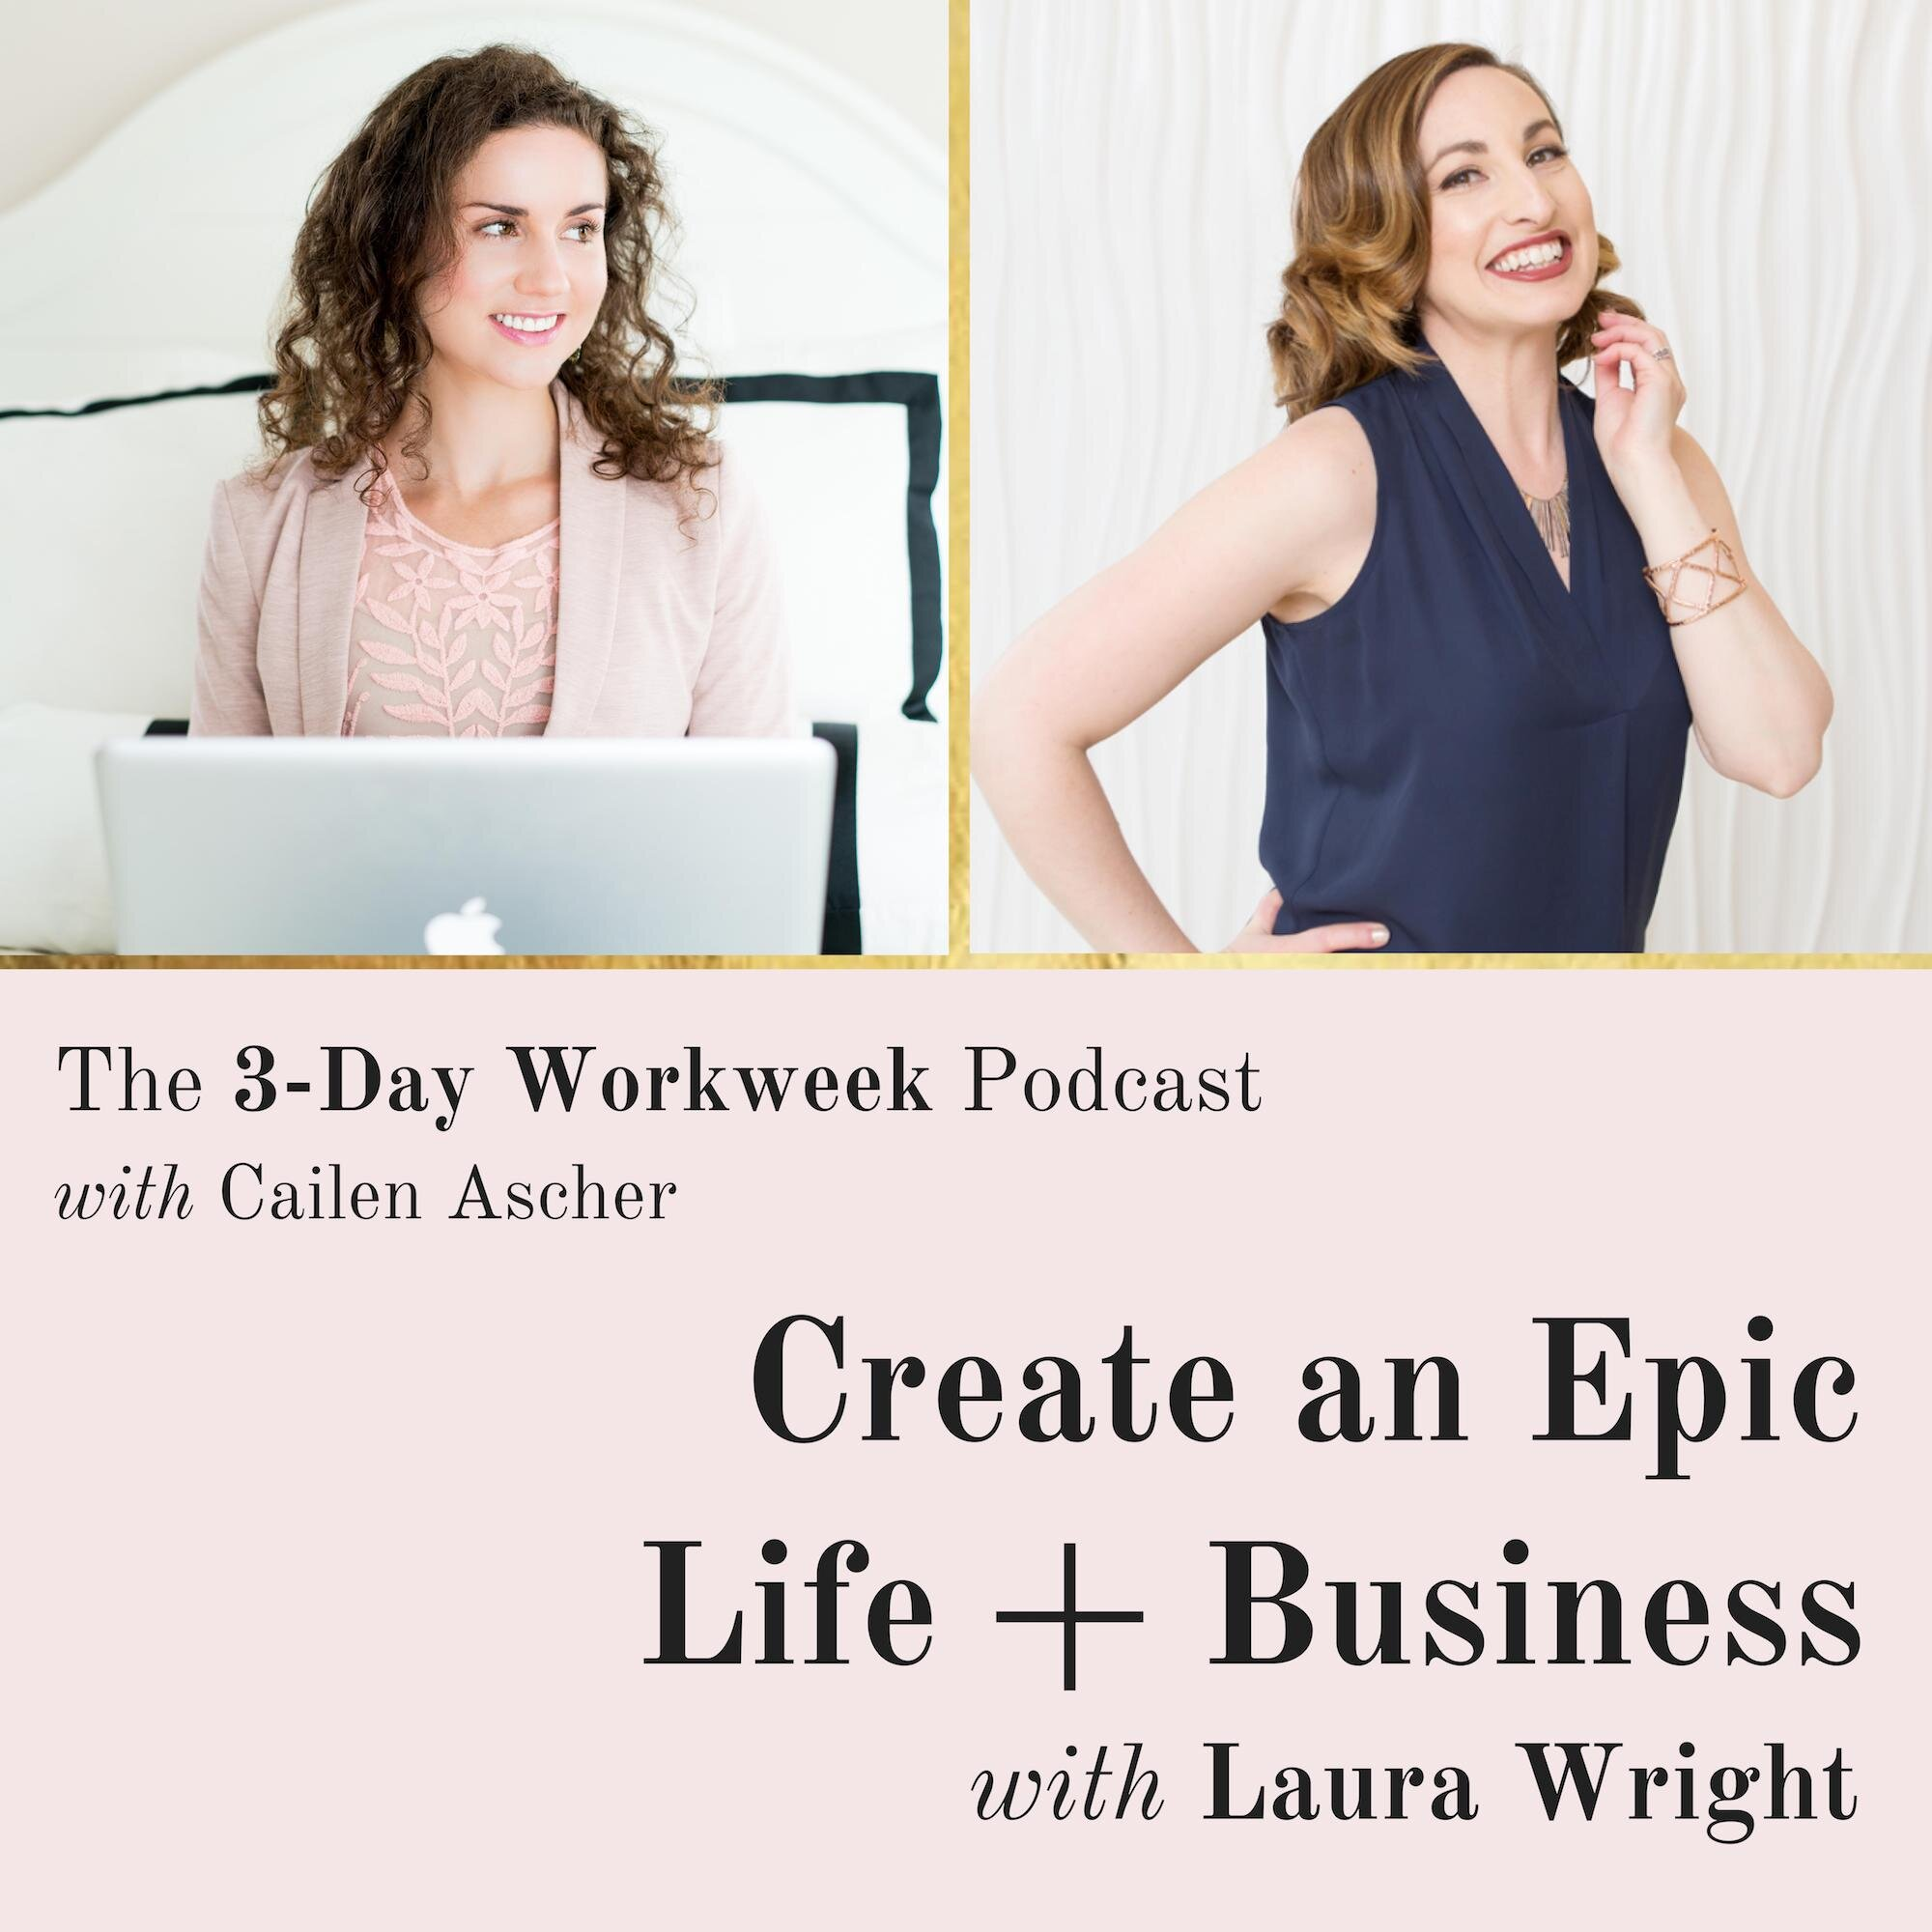 The 3-Day Workweek Podcast with Cailen Ascher - 2019-10-30 - Create an Epic Life + Business with Laura Wright.jpg